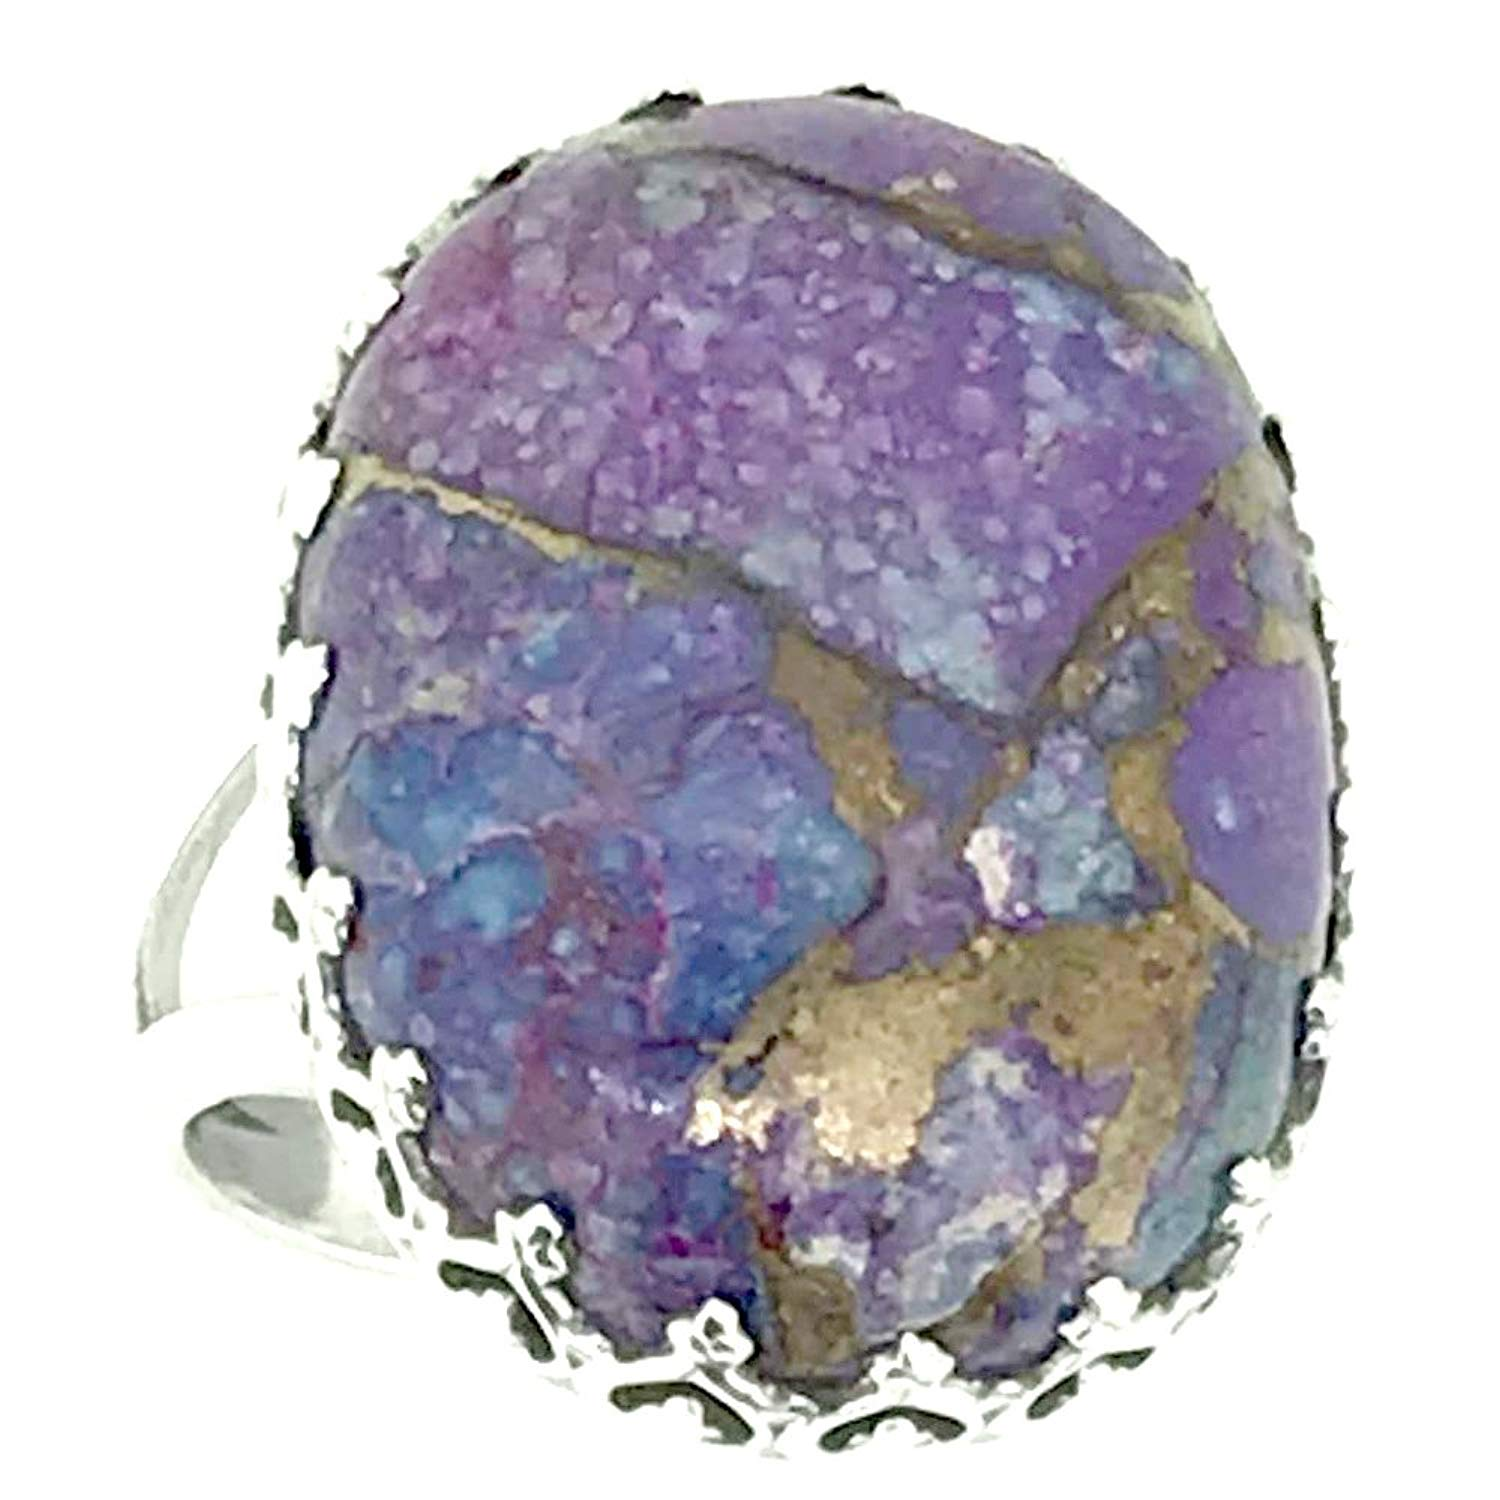 srgjewellers Copper Turquoise Gemstone 925 Sterling Silver Ring US Size-5.75 Handmade Jewelry # 14663-5